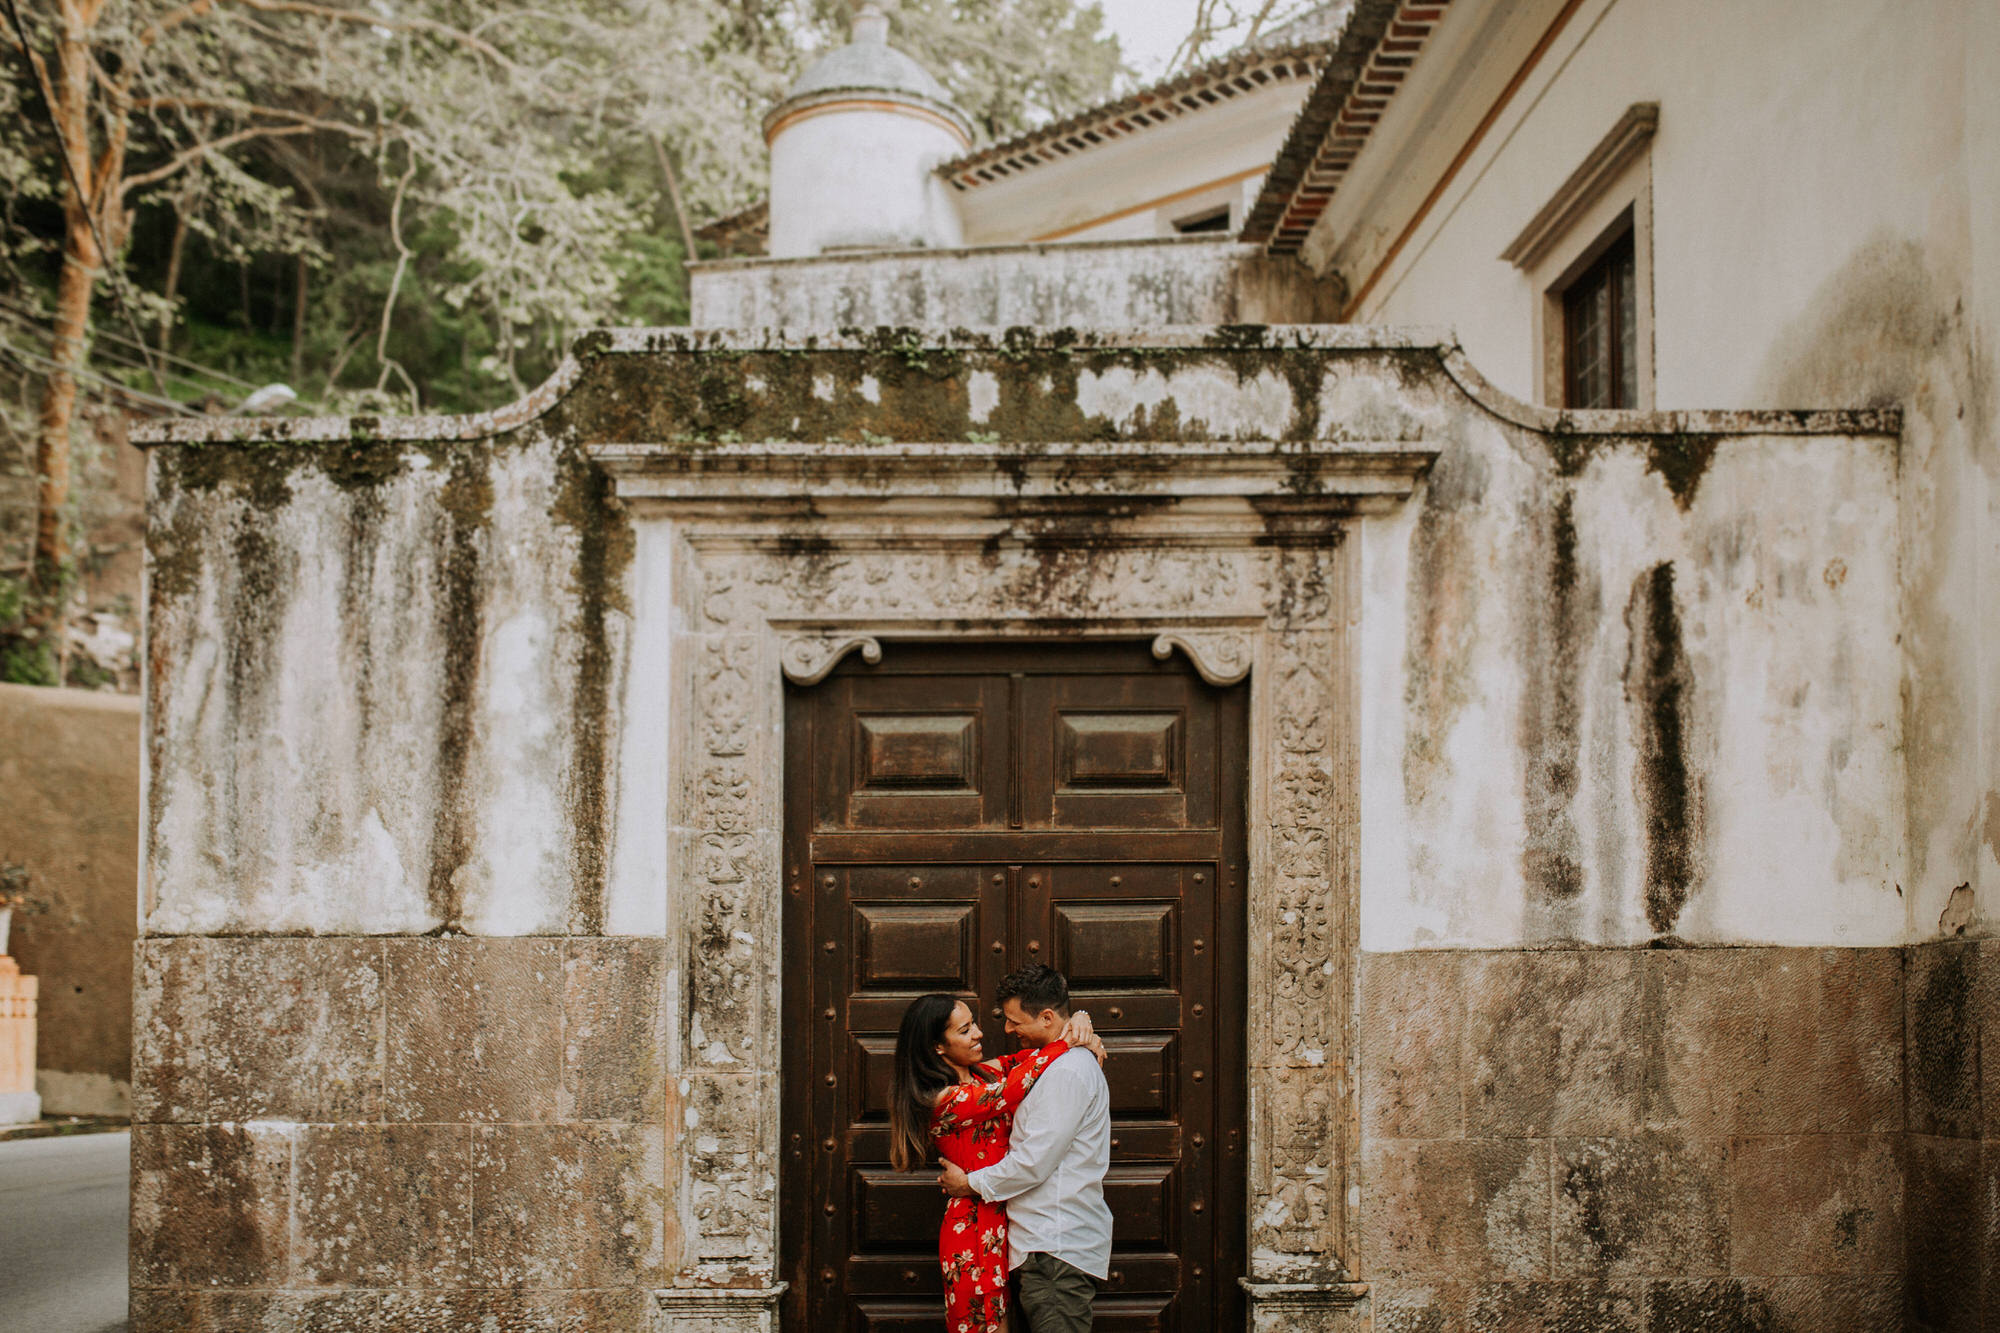 35-sessao-noivado-engagement-love-session-Sintra-lisboa-town-wedding-photography-photographer-natural-best-venue-planner-destination-filipe-santiago-fotografia-lifestyle-documentary